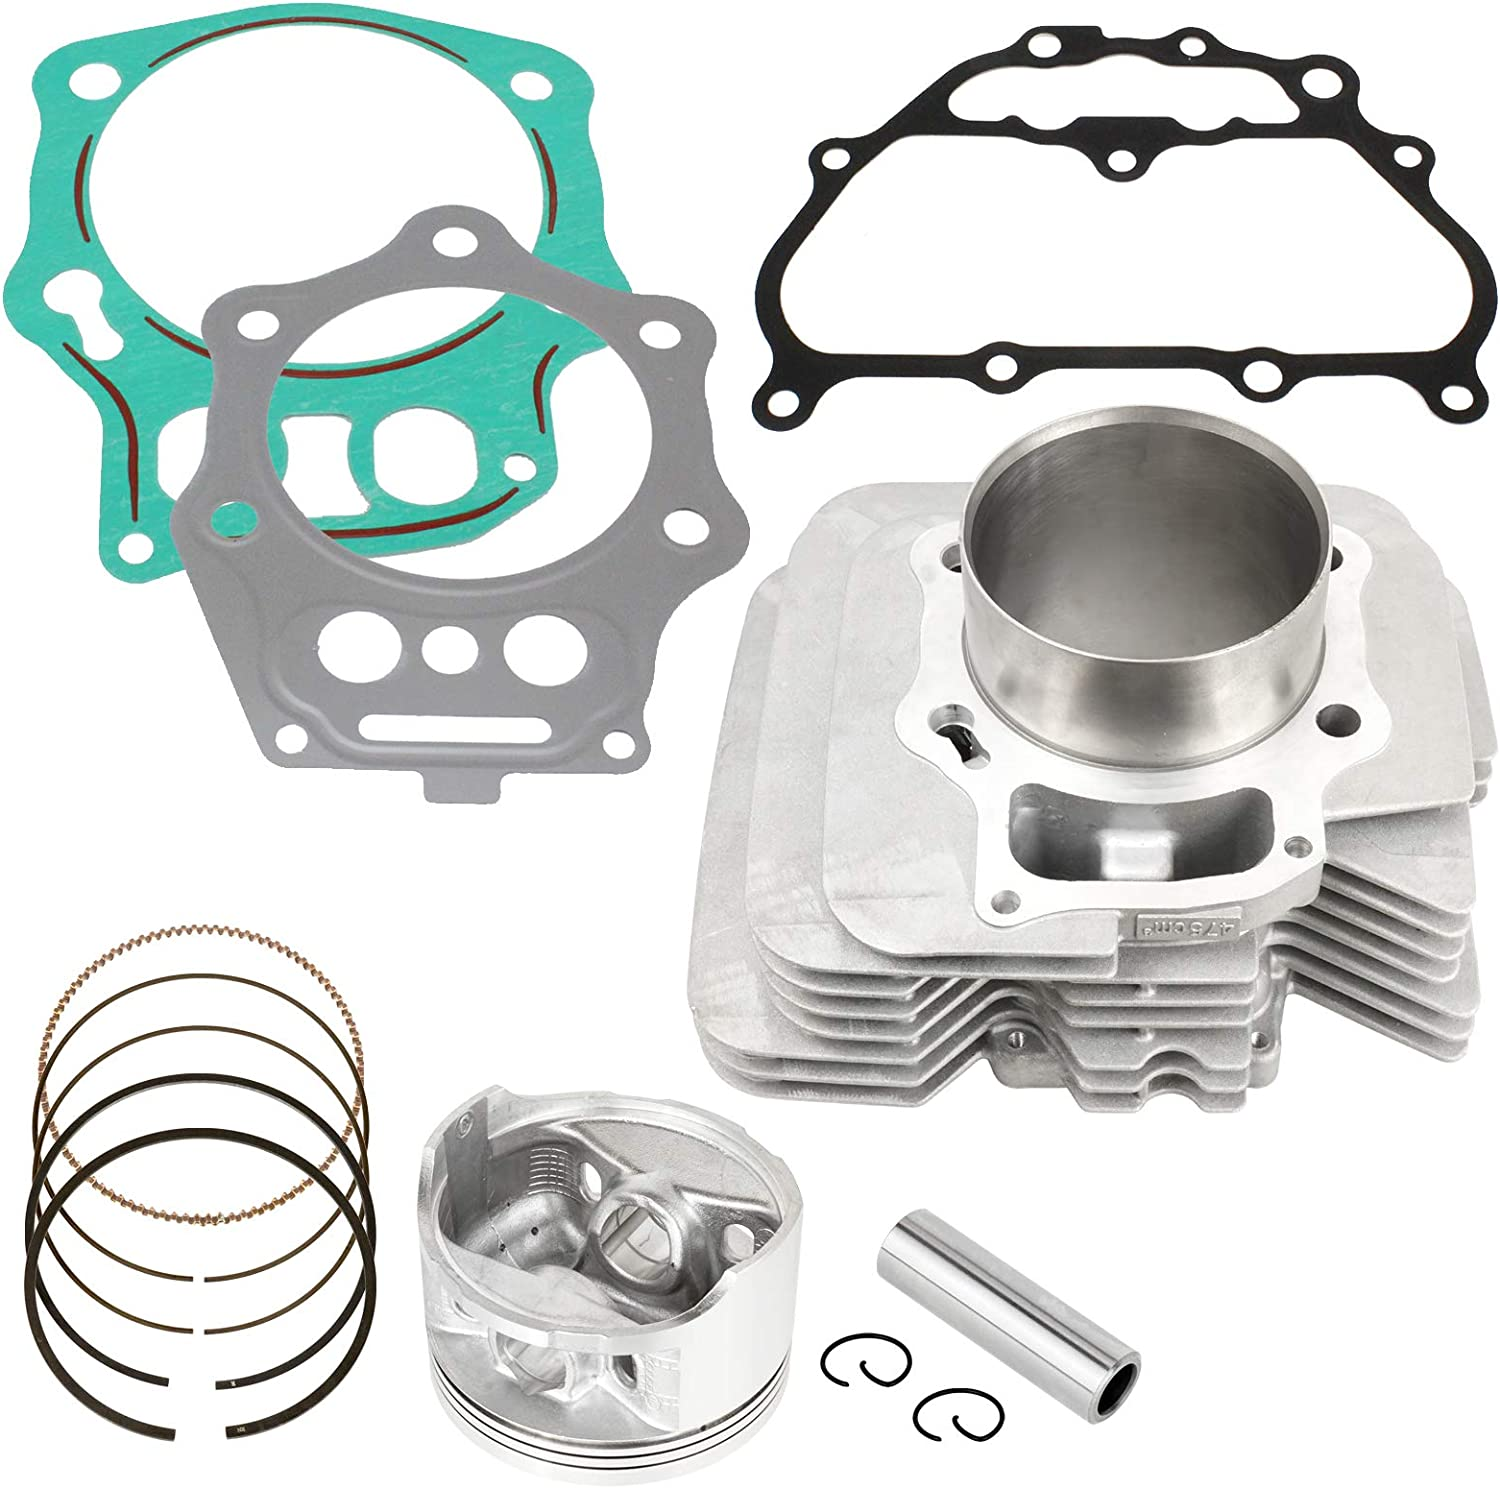 Caltric Cylinder Piston Ring Gasket Kit for Honda Trx500Fpm Foreman 500 4X4 Eps 2008-2011